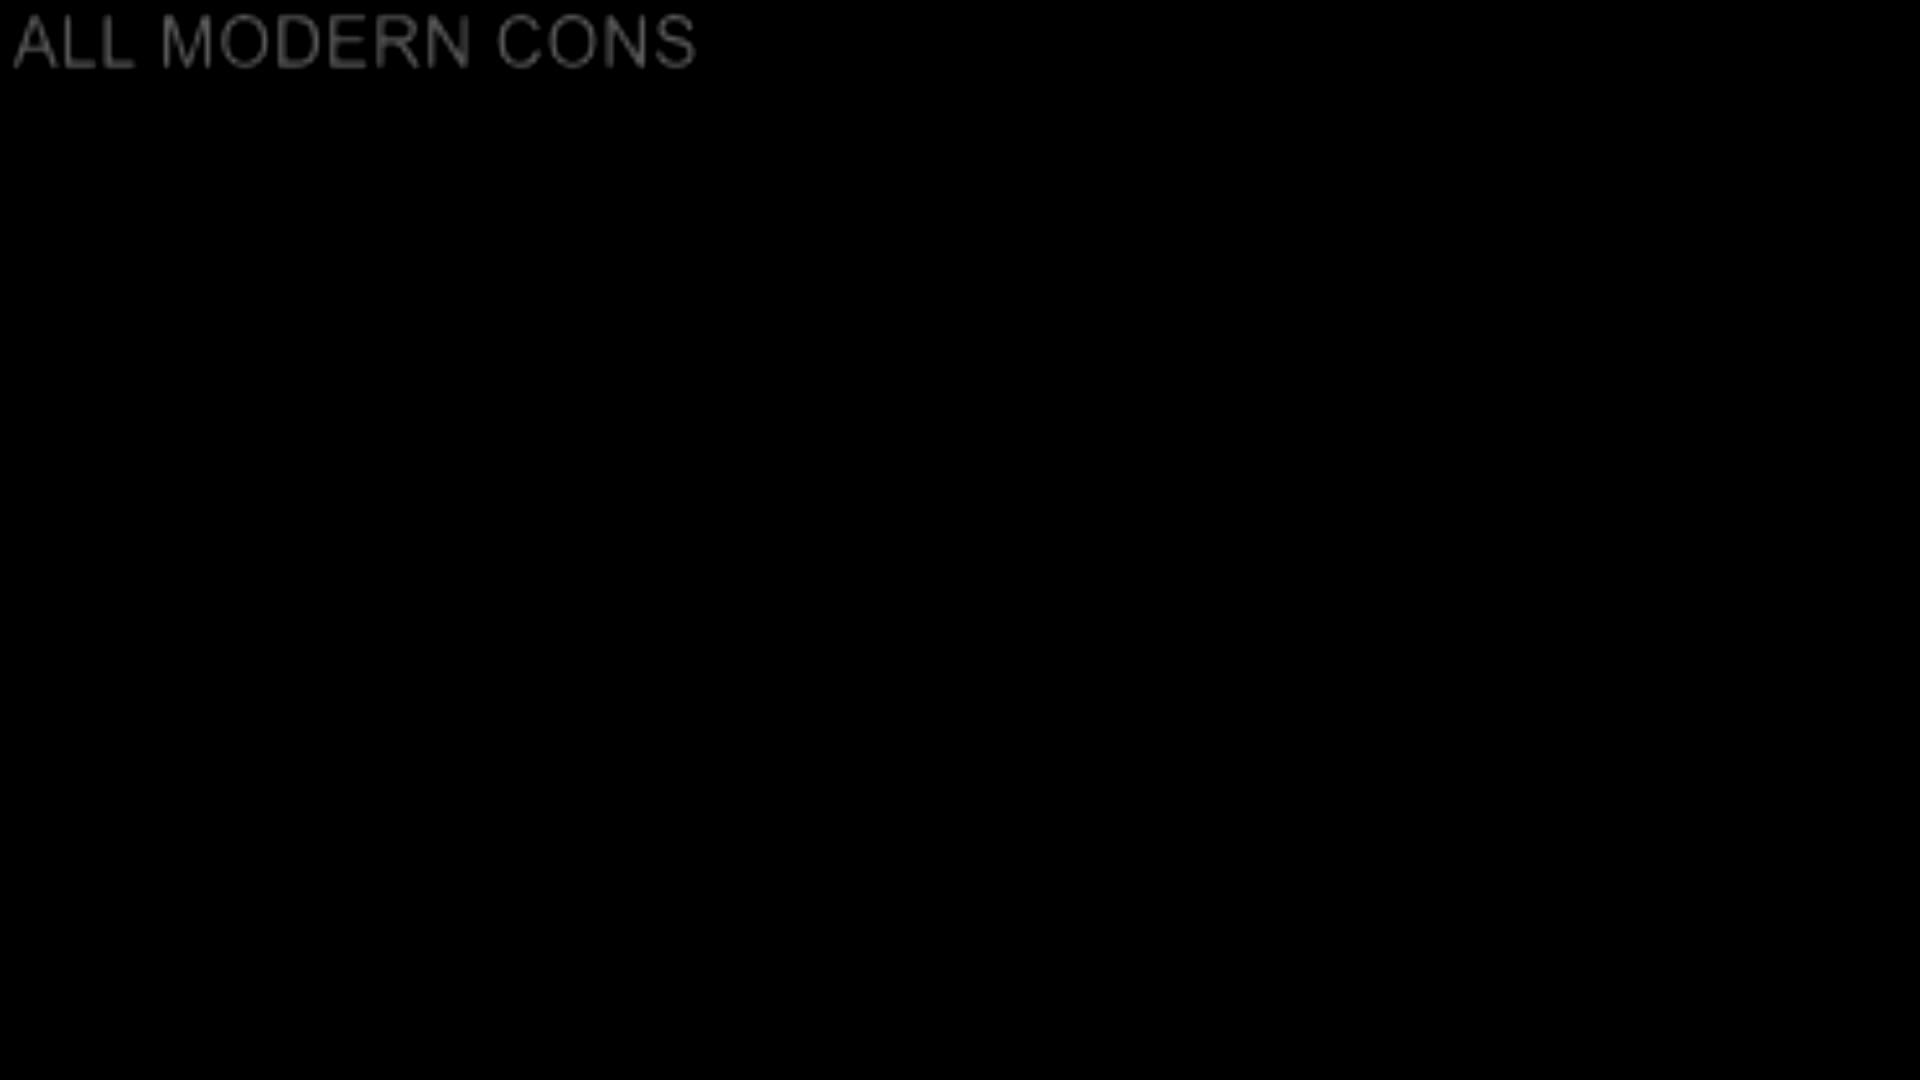 The Failed Counter-Revolution of Hitler To Overthrow The Weimar Republic